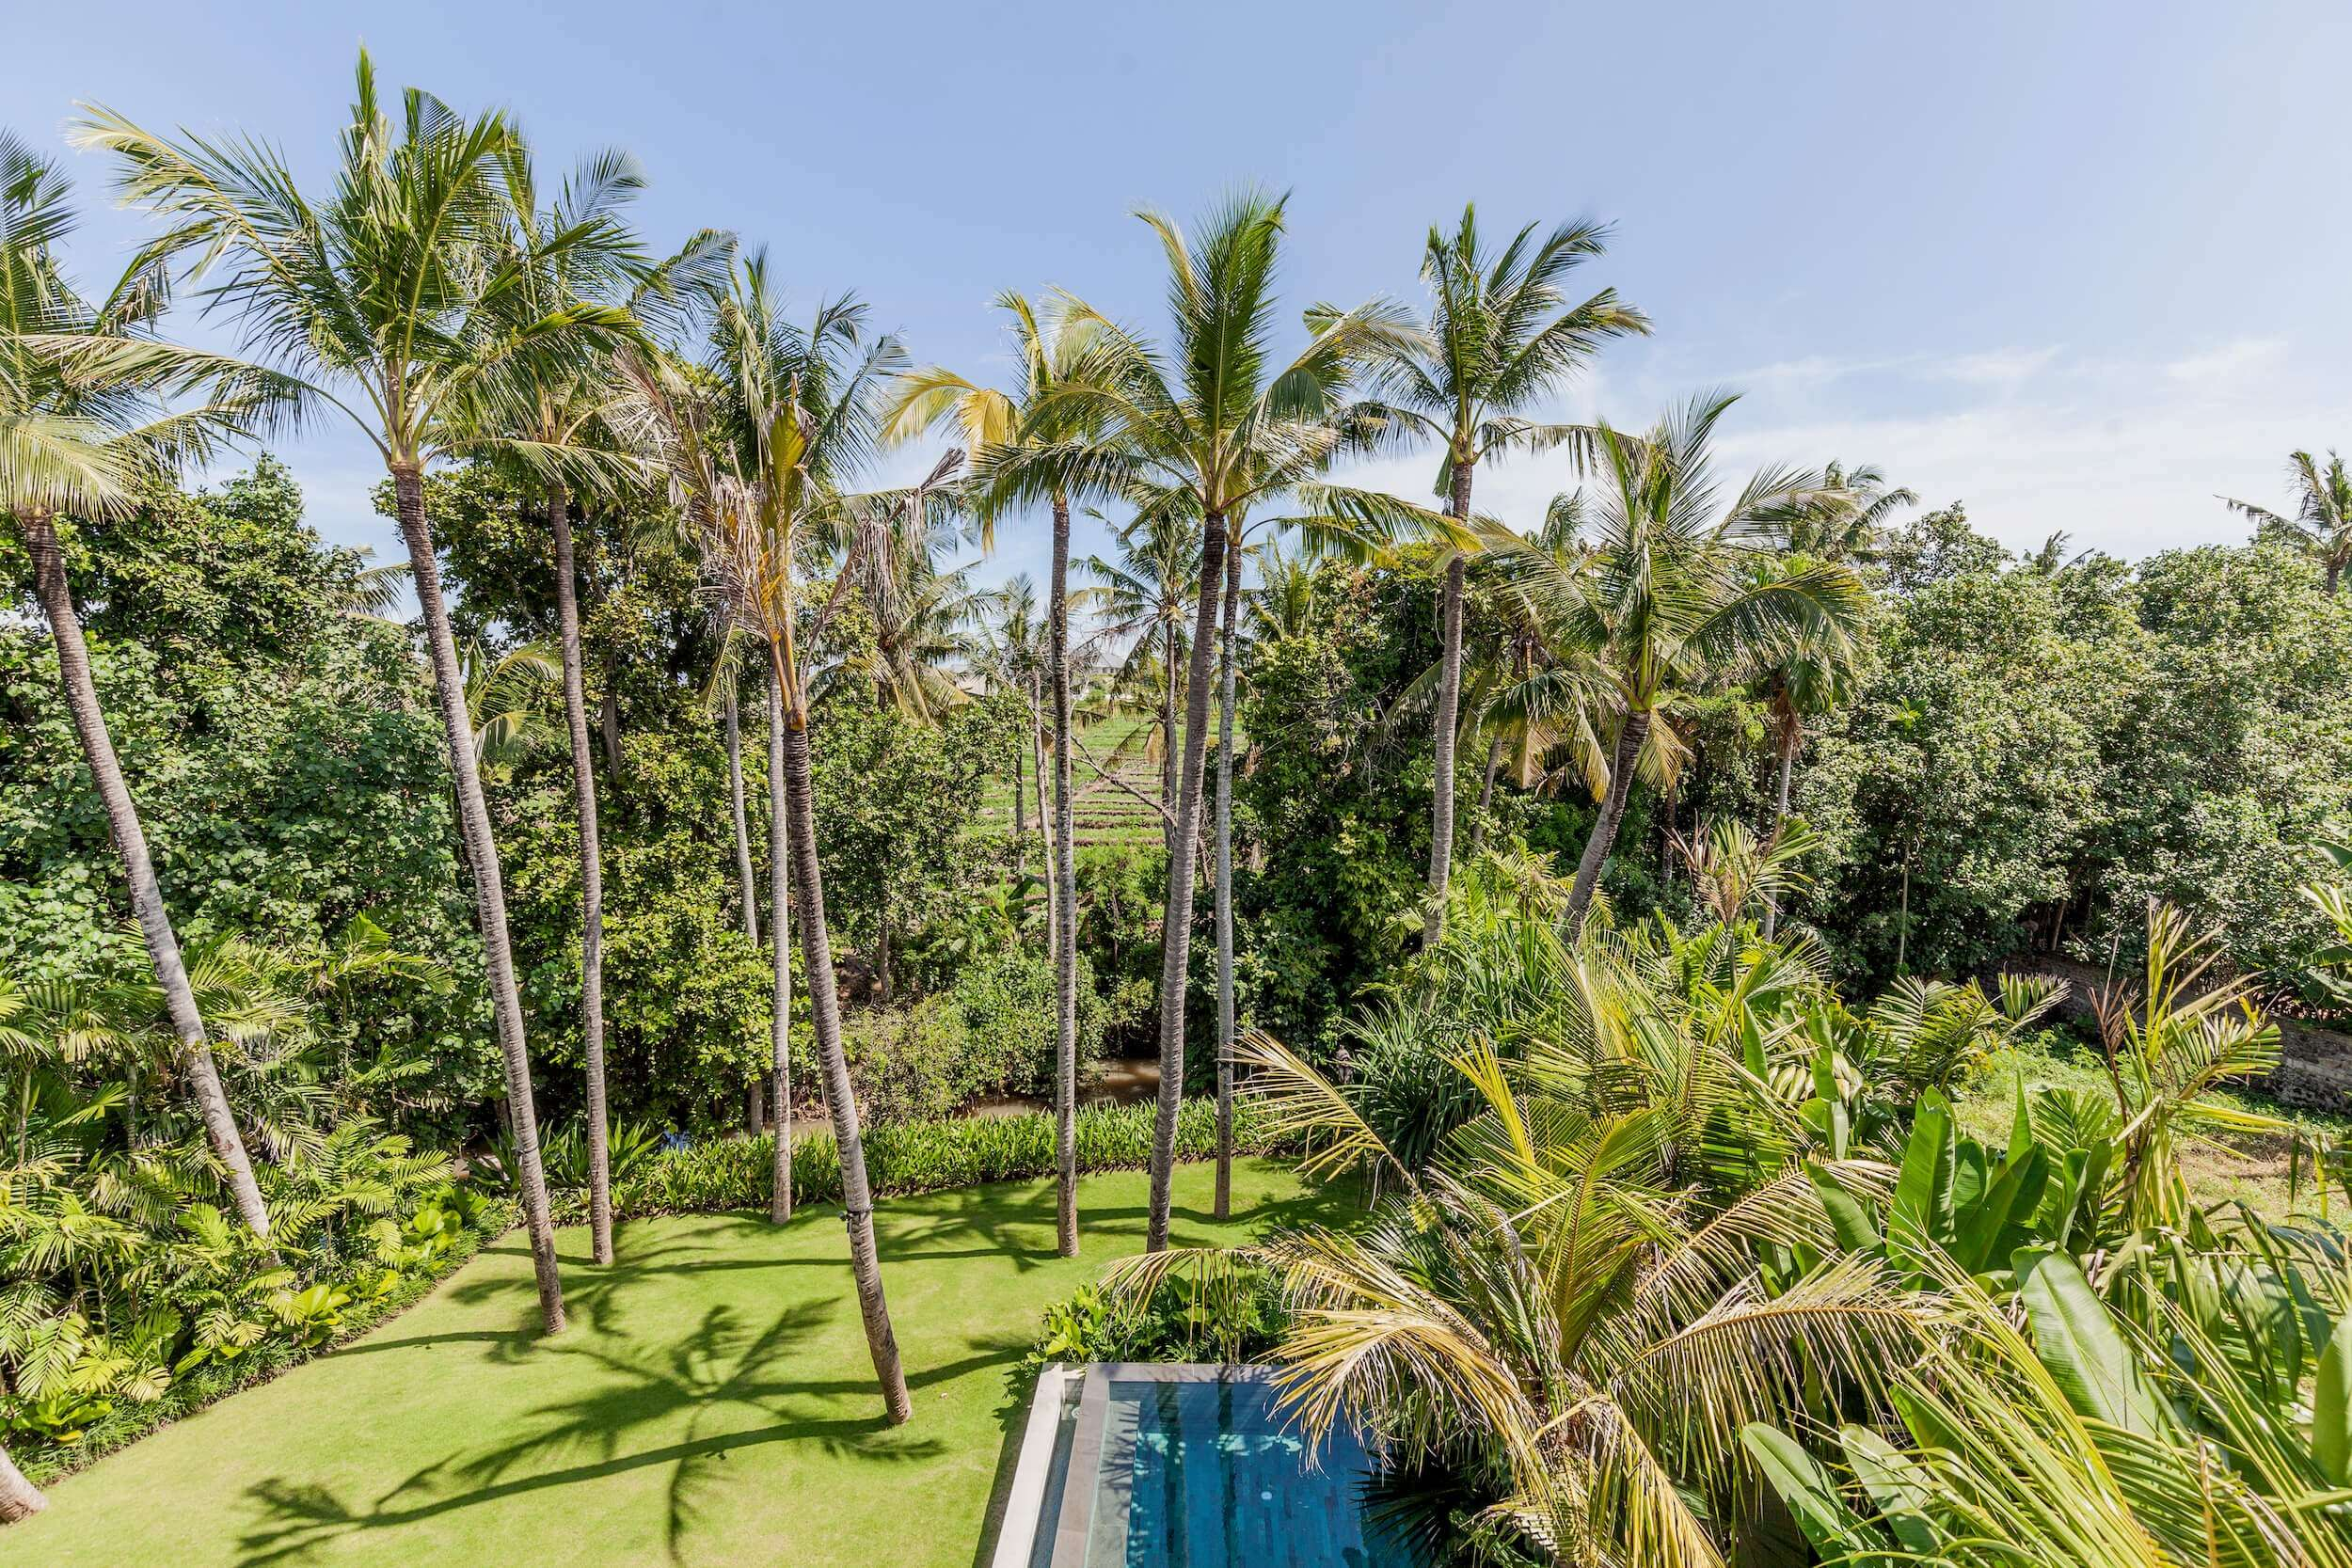 pristine garden with a large pool and tall palm trees